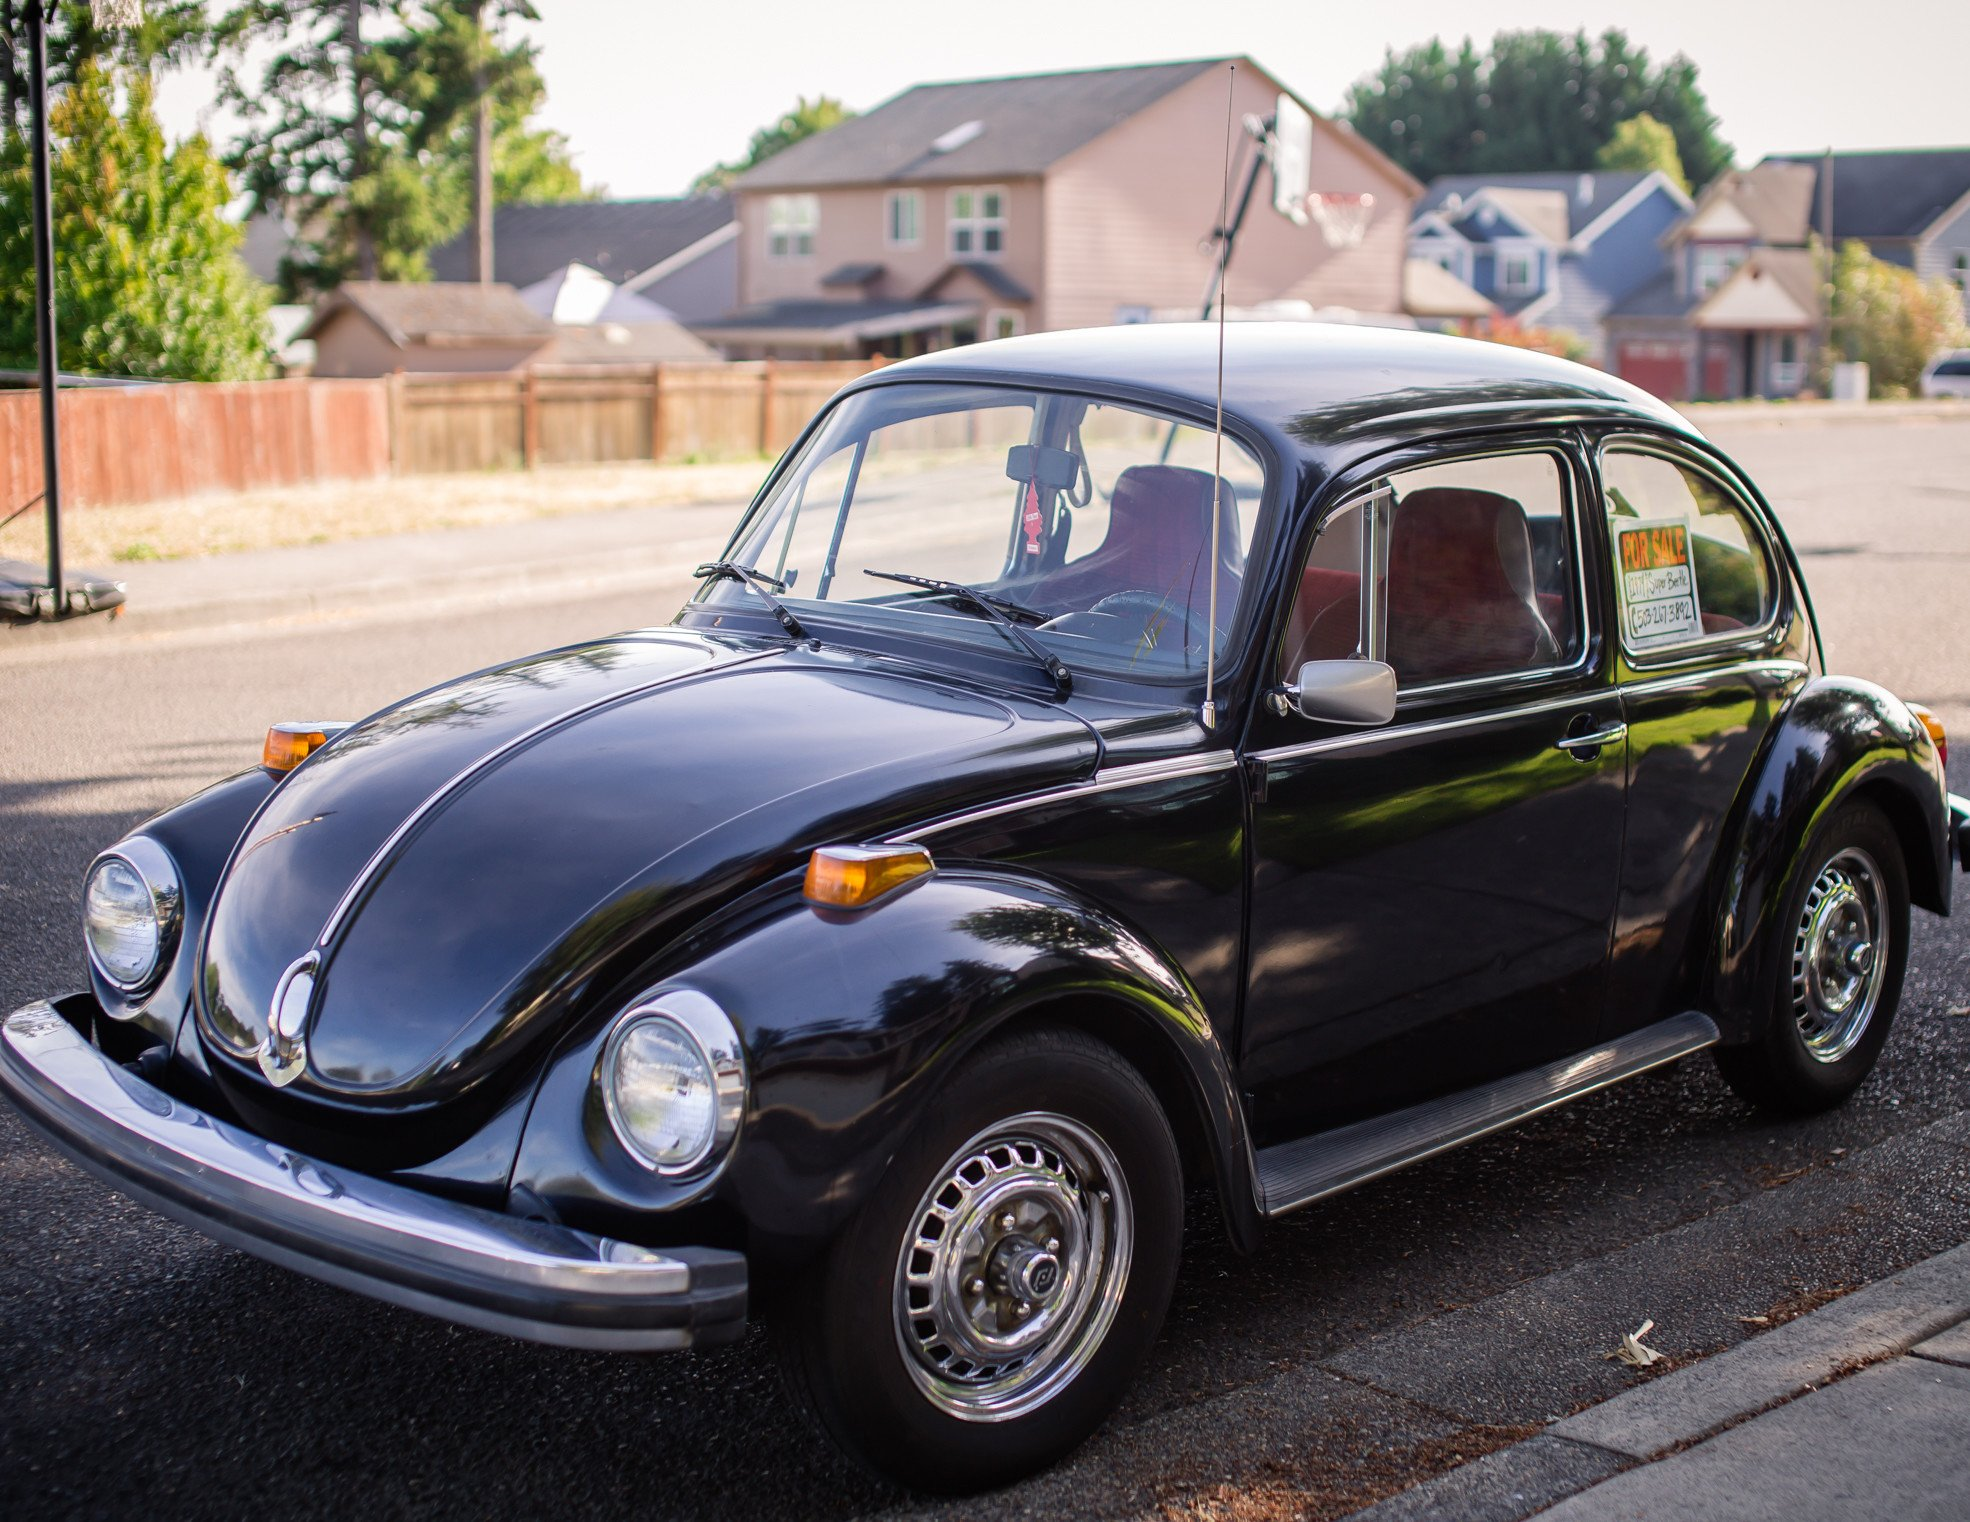 1974 Volkswagen Beetle Coupe For Sale Near St Helens Oregon 97051 Classics On Autotrader